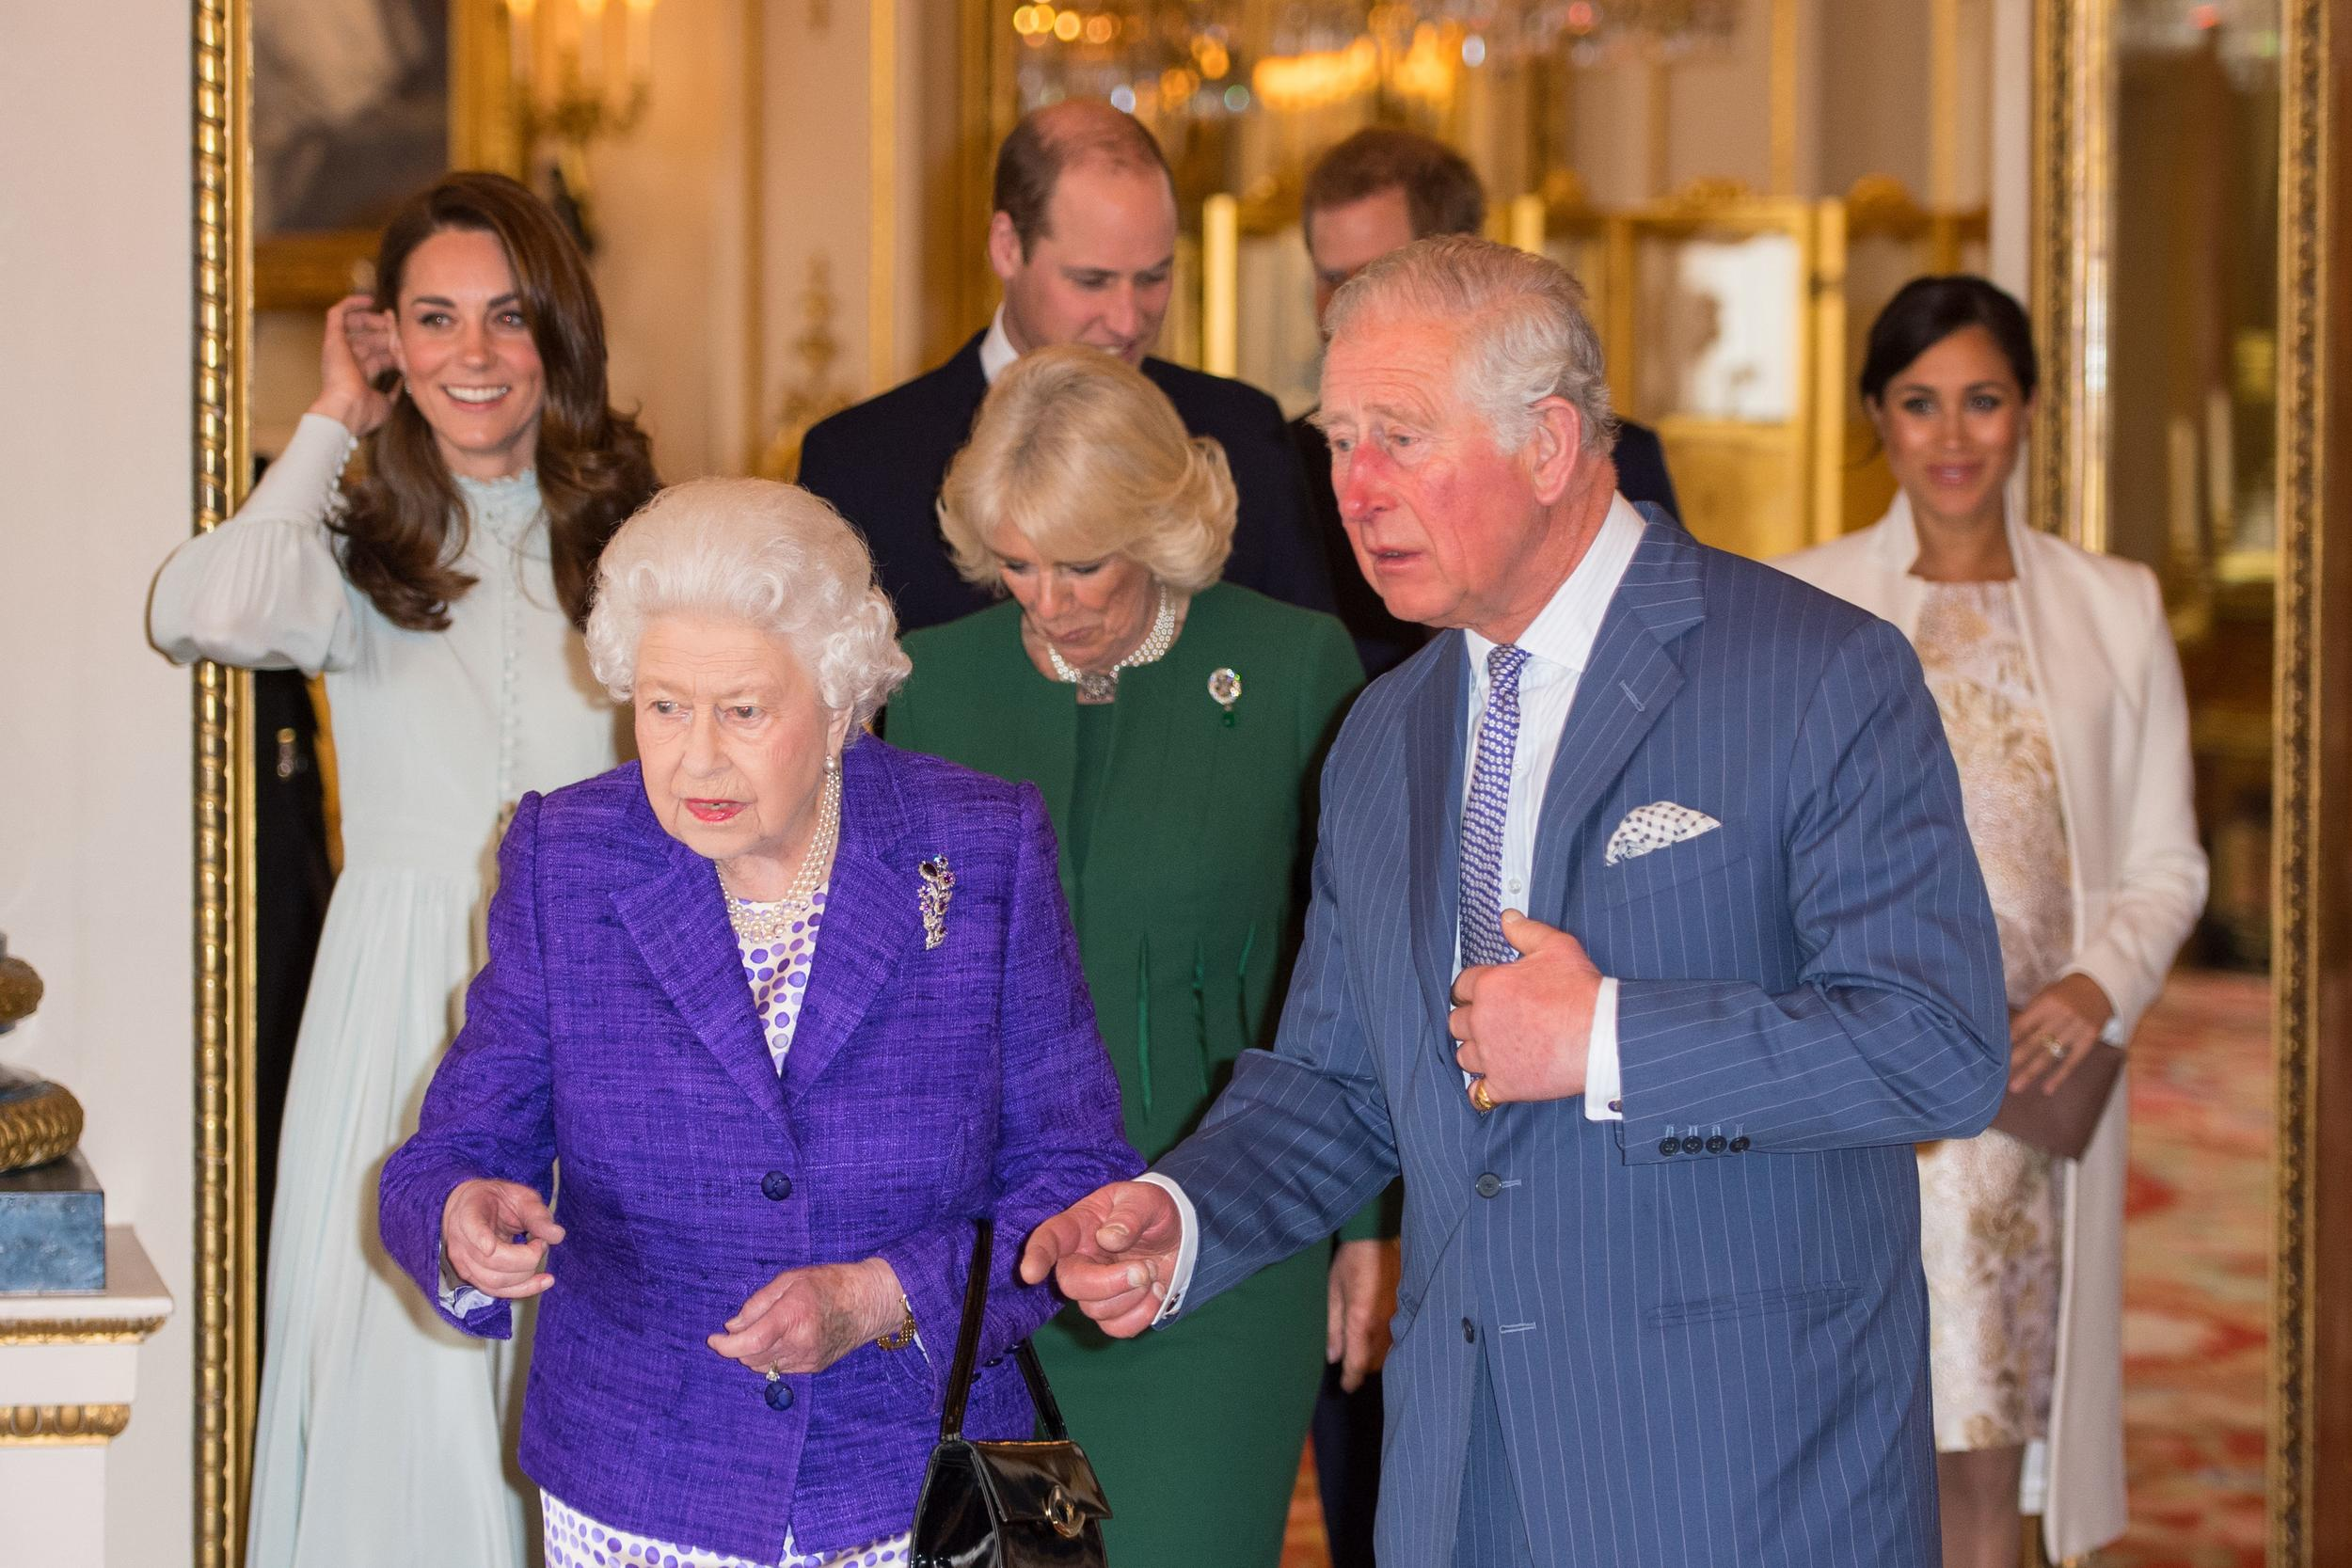 (L-R) Britain's Catherine, Duchess of Cambridge, Britain's Queen Elizabeth II, Britain's Prince William, Duke of Cambridge, Britain's Camilla, Duchess of Cornwall, Britain's Prince Charles, Prince of Wales, Britain's Prince Harry, Duke of Sussex, and Britain's Meghan, Duchess of Sussex attend a reception to mark the 50th Anniversary of the investiture of The Prince of Wales at Buckingham Palace in London on March 5, 2019. - The Queen hosted a reception to mark the Fiftieth Anniversary of the investiture of Britain's Prince Charles, her son, as the Prince of Wales. Prince Charles was created The Prince of Wales aged 9 on July 26th 1958 and was formally invested with the title by Her Majesty The Queen on July 1st 1969 at Caernarfon Castle. (Photo by Dominic Lipinski / POOL / AFP)        (Photo credit should read DOMINIC LIPINSKI/AFP/Getty Images)